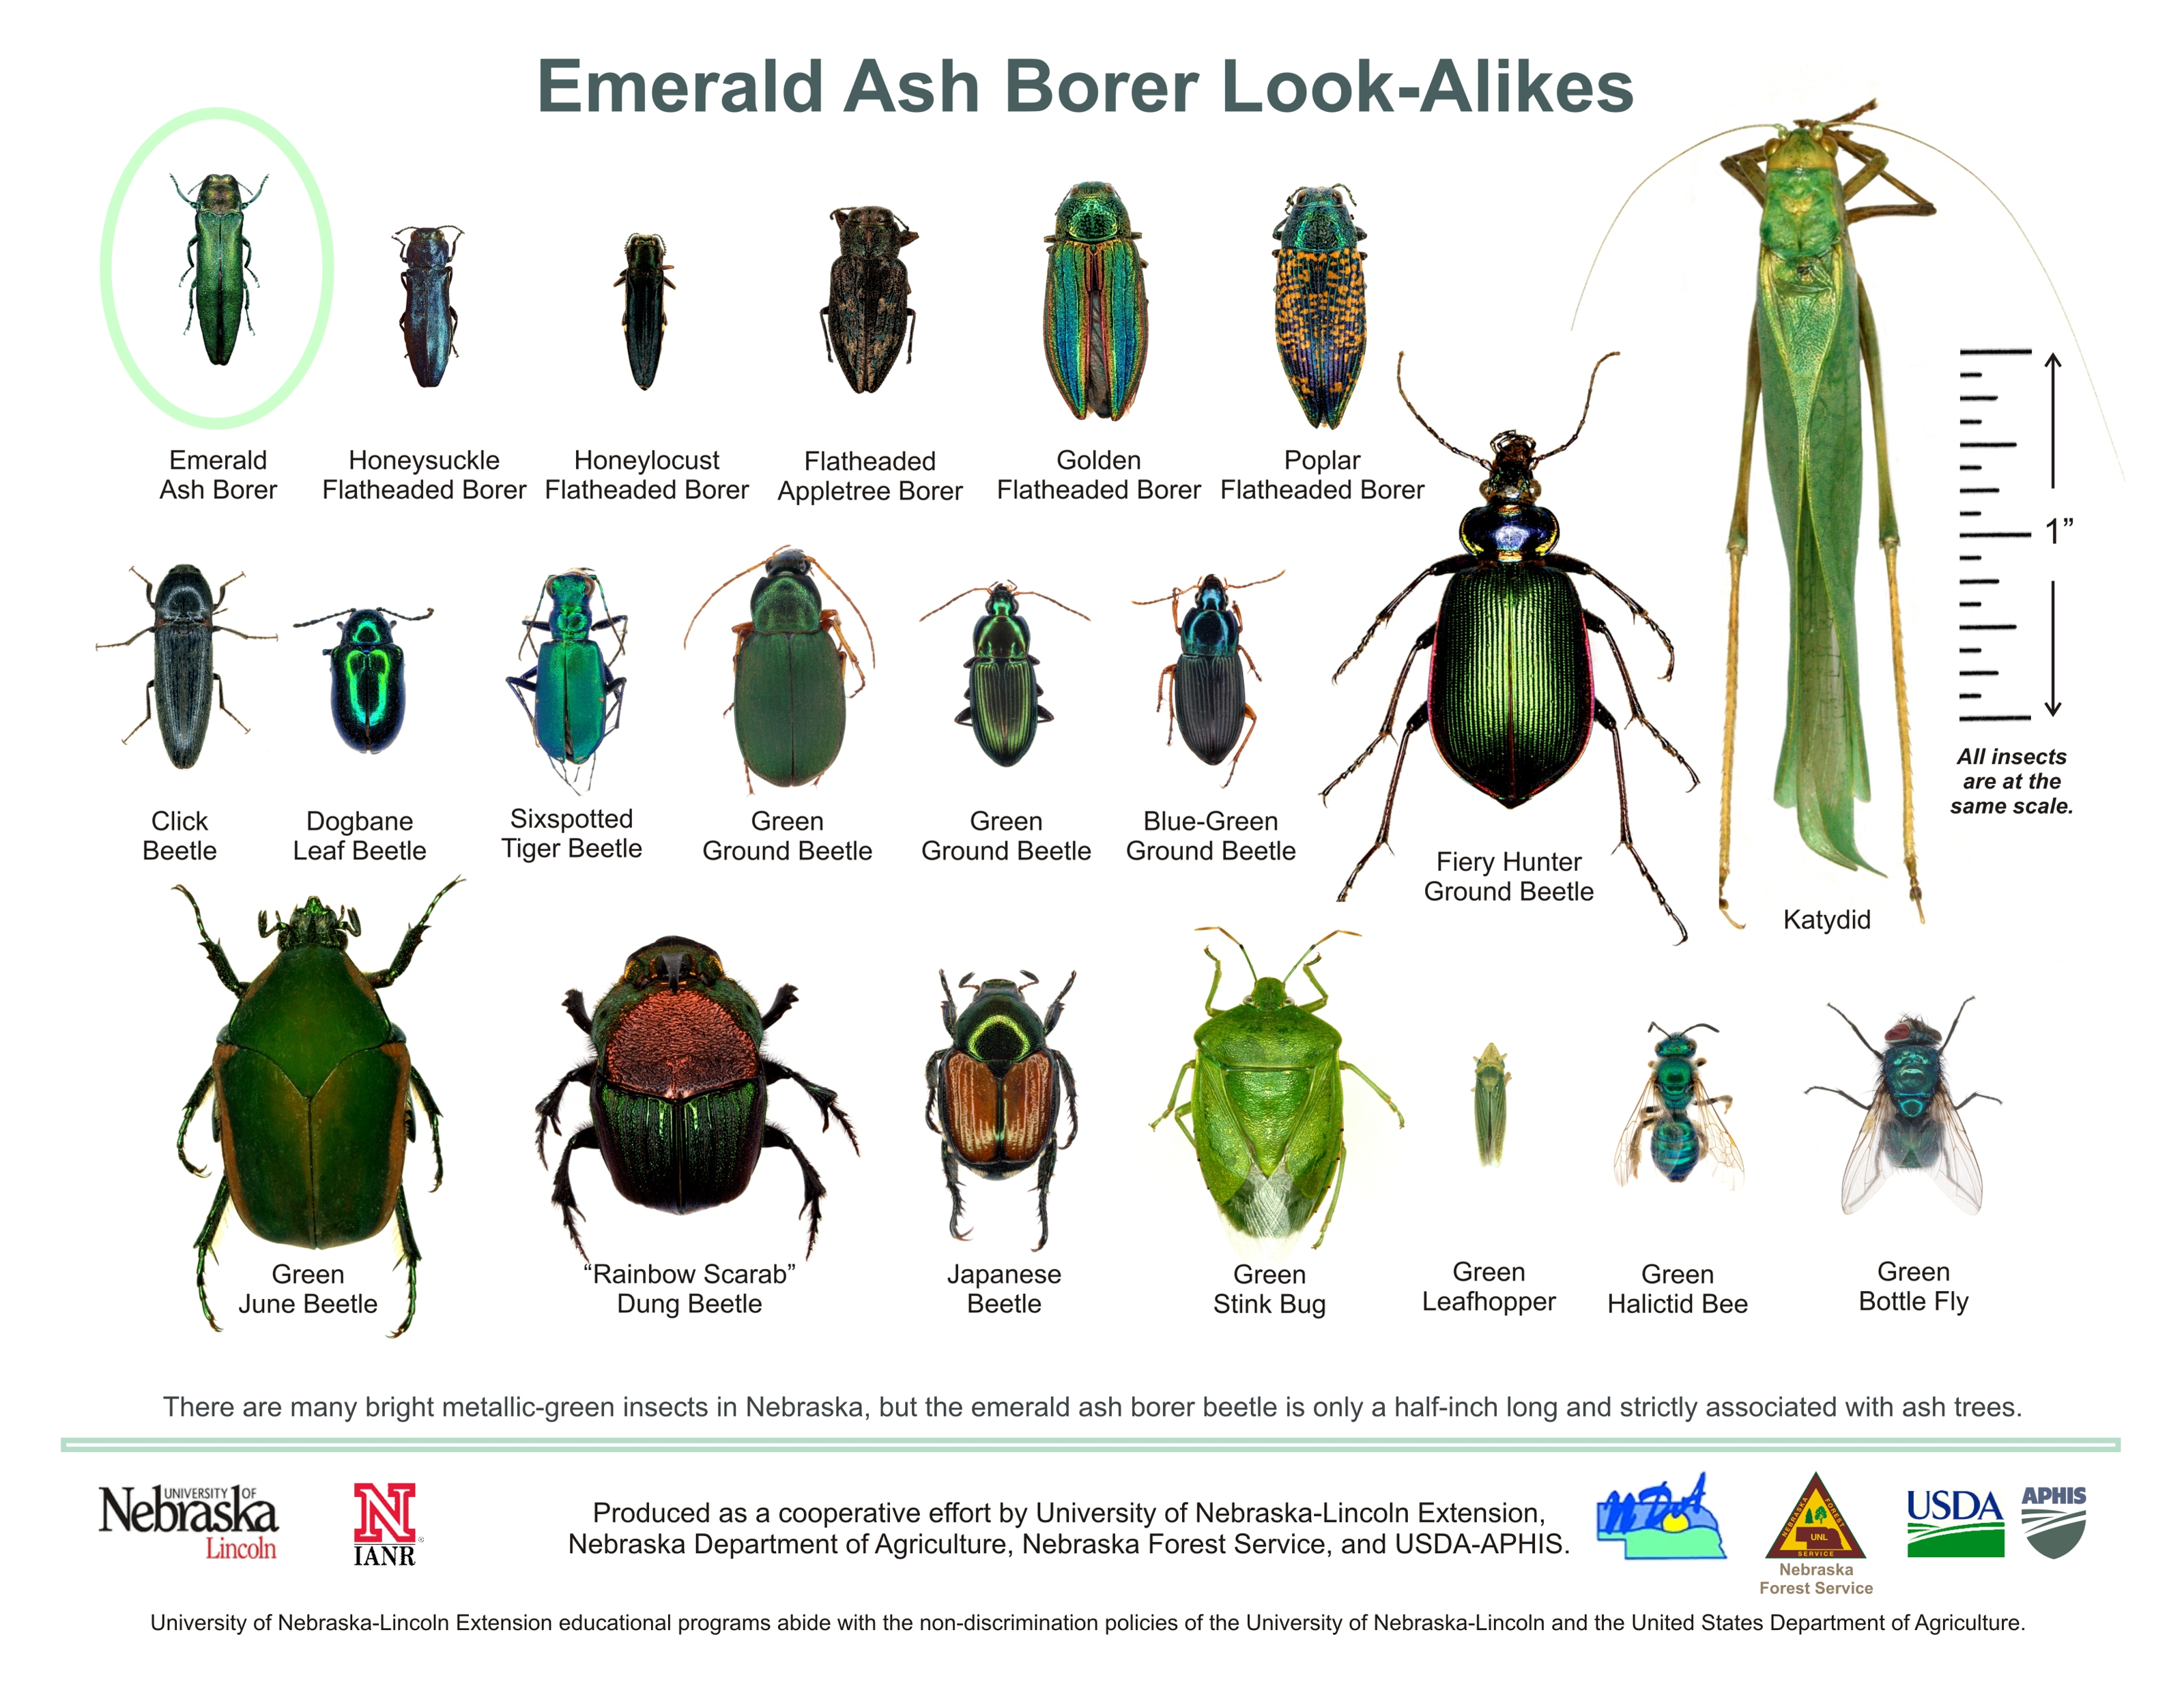 Emerald Ash Borer in Indiana from Purdue Entomology | Purdue ...